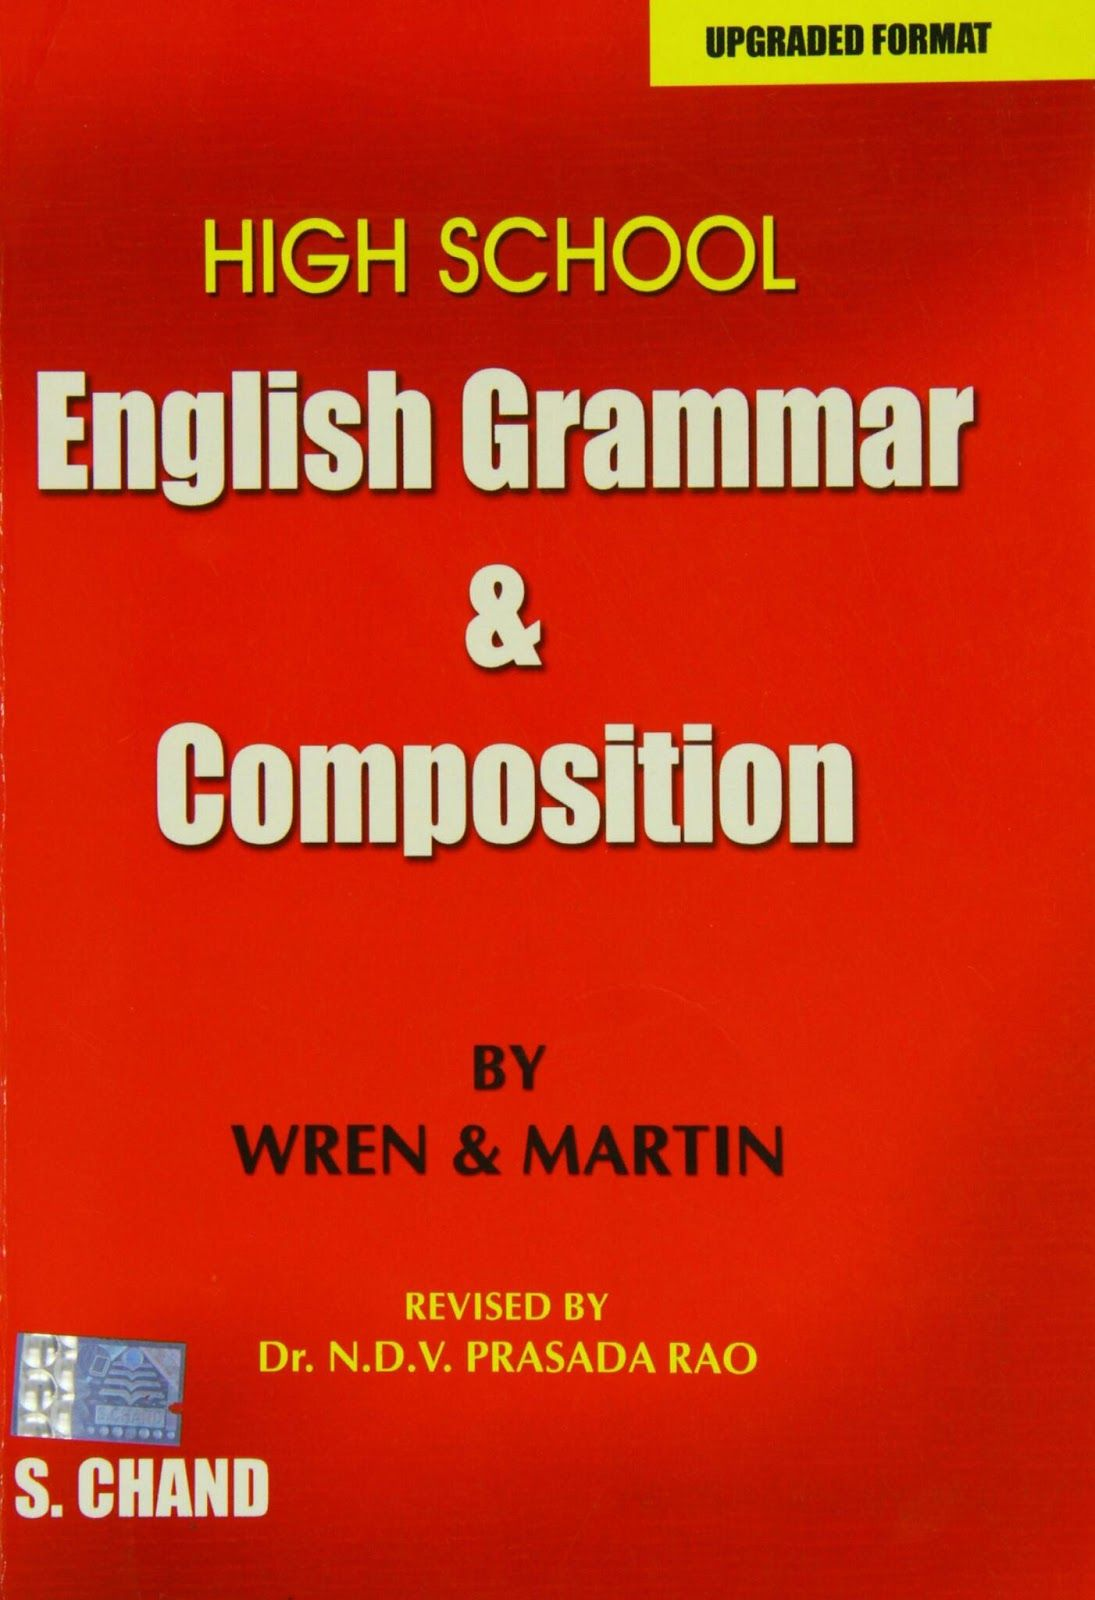 High School English Grammar Amp Composition By Wren Amp Martin